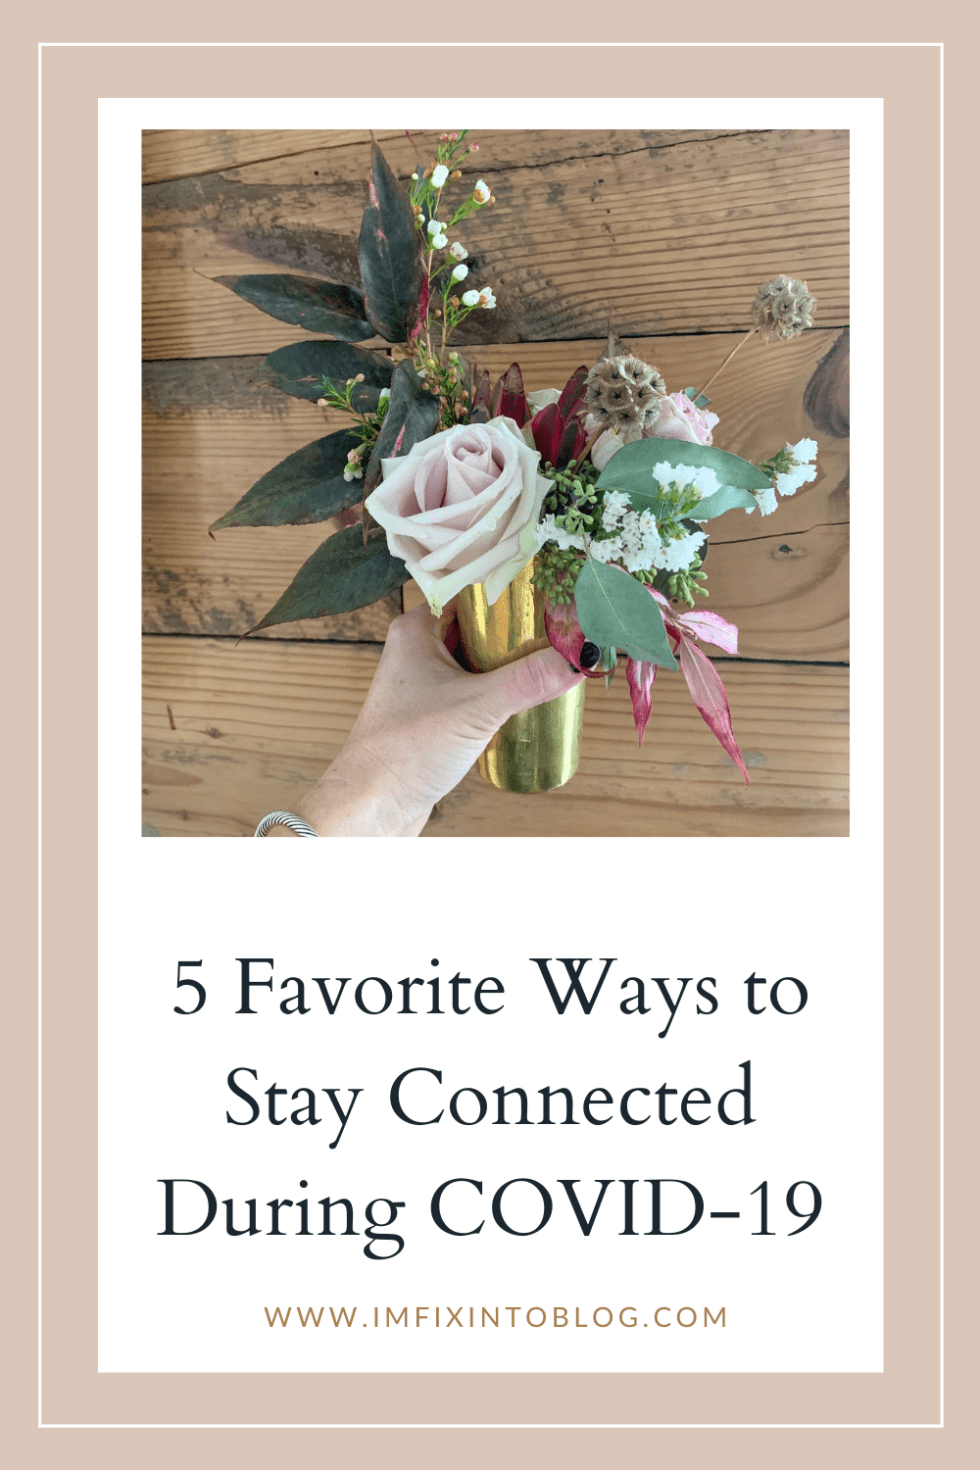 5 Favorite Ways to Stay Connected During COVID-19 - I'm Fixin' To - @imfixintoblog |Ways to Stay Connected by popular NC lifestyle blog, I'm Fixin' To: Pinterest image of a woman holding a gold vase filled with flowers.